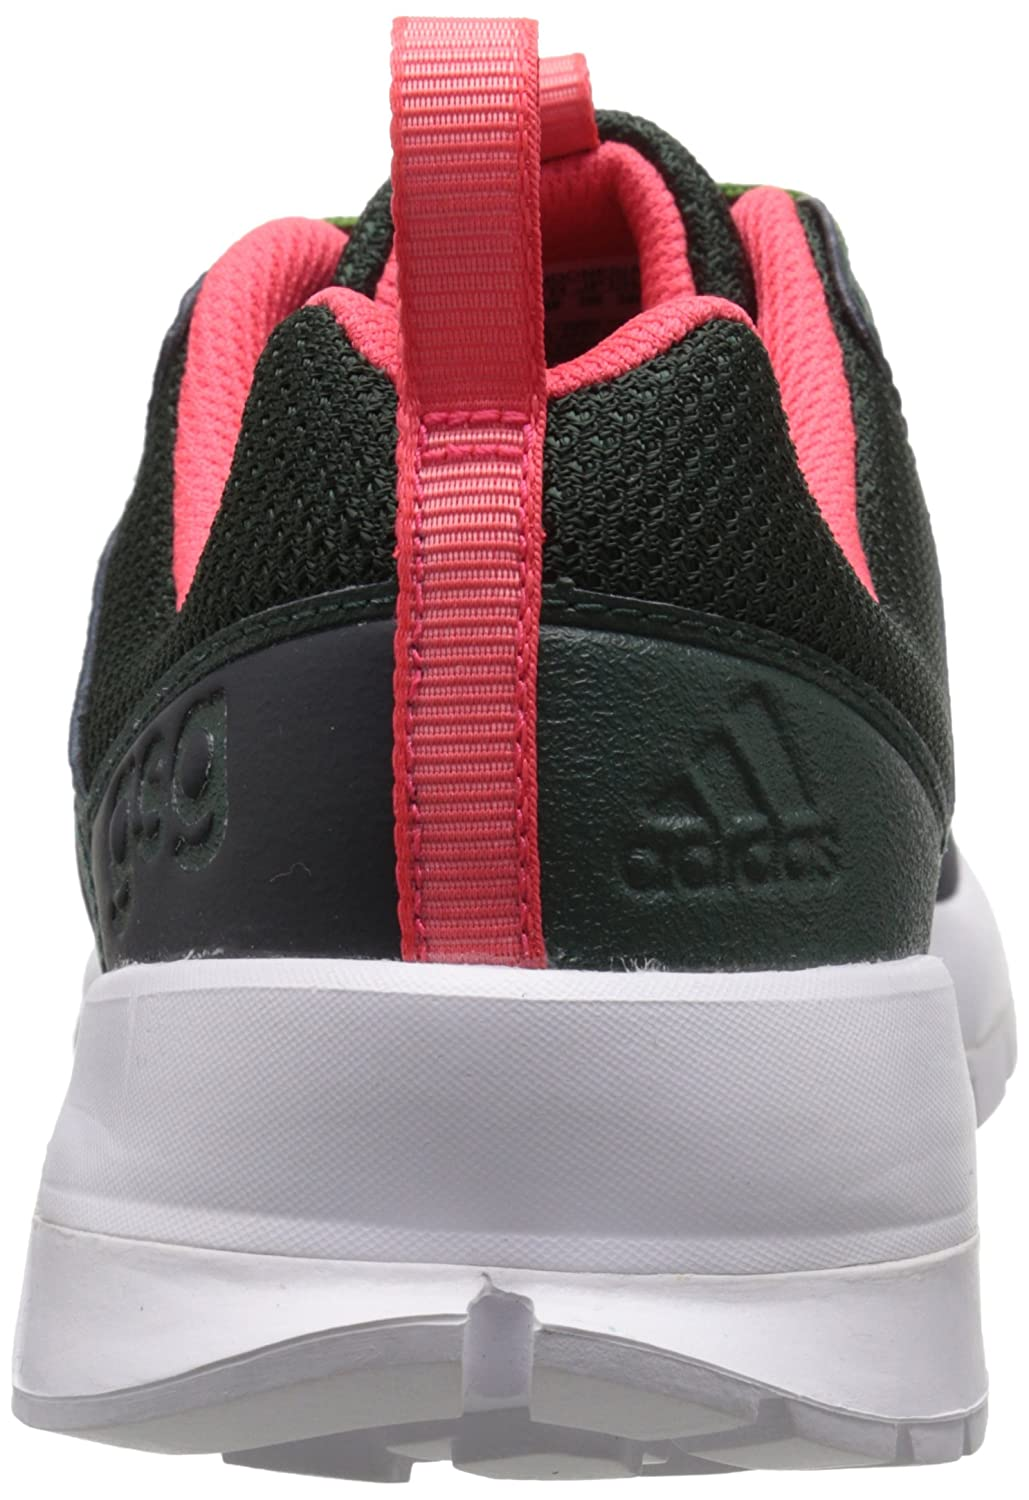 outlet store a8e32 84fdf Amazon.com  adidas Outdoor Womens Gsg9 Trail Running Shoe  Trail Running